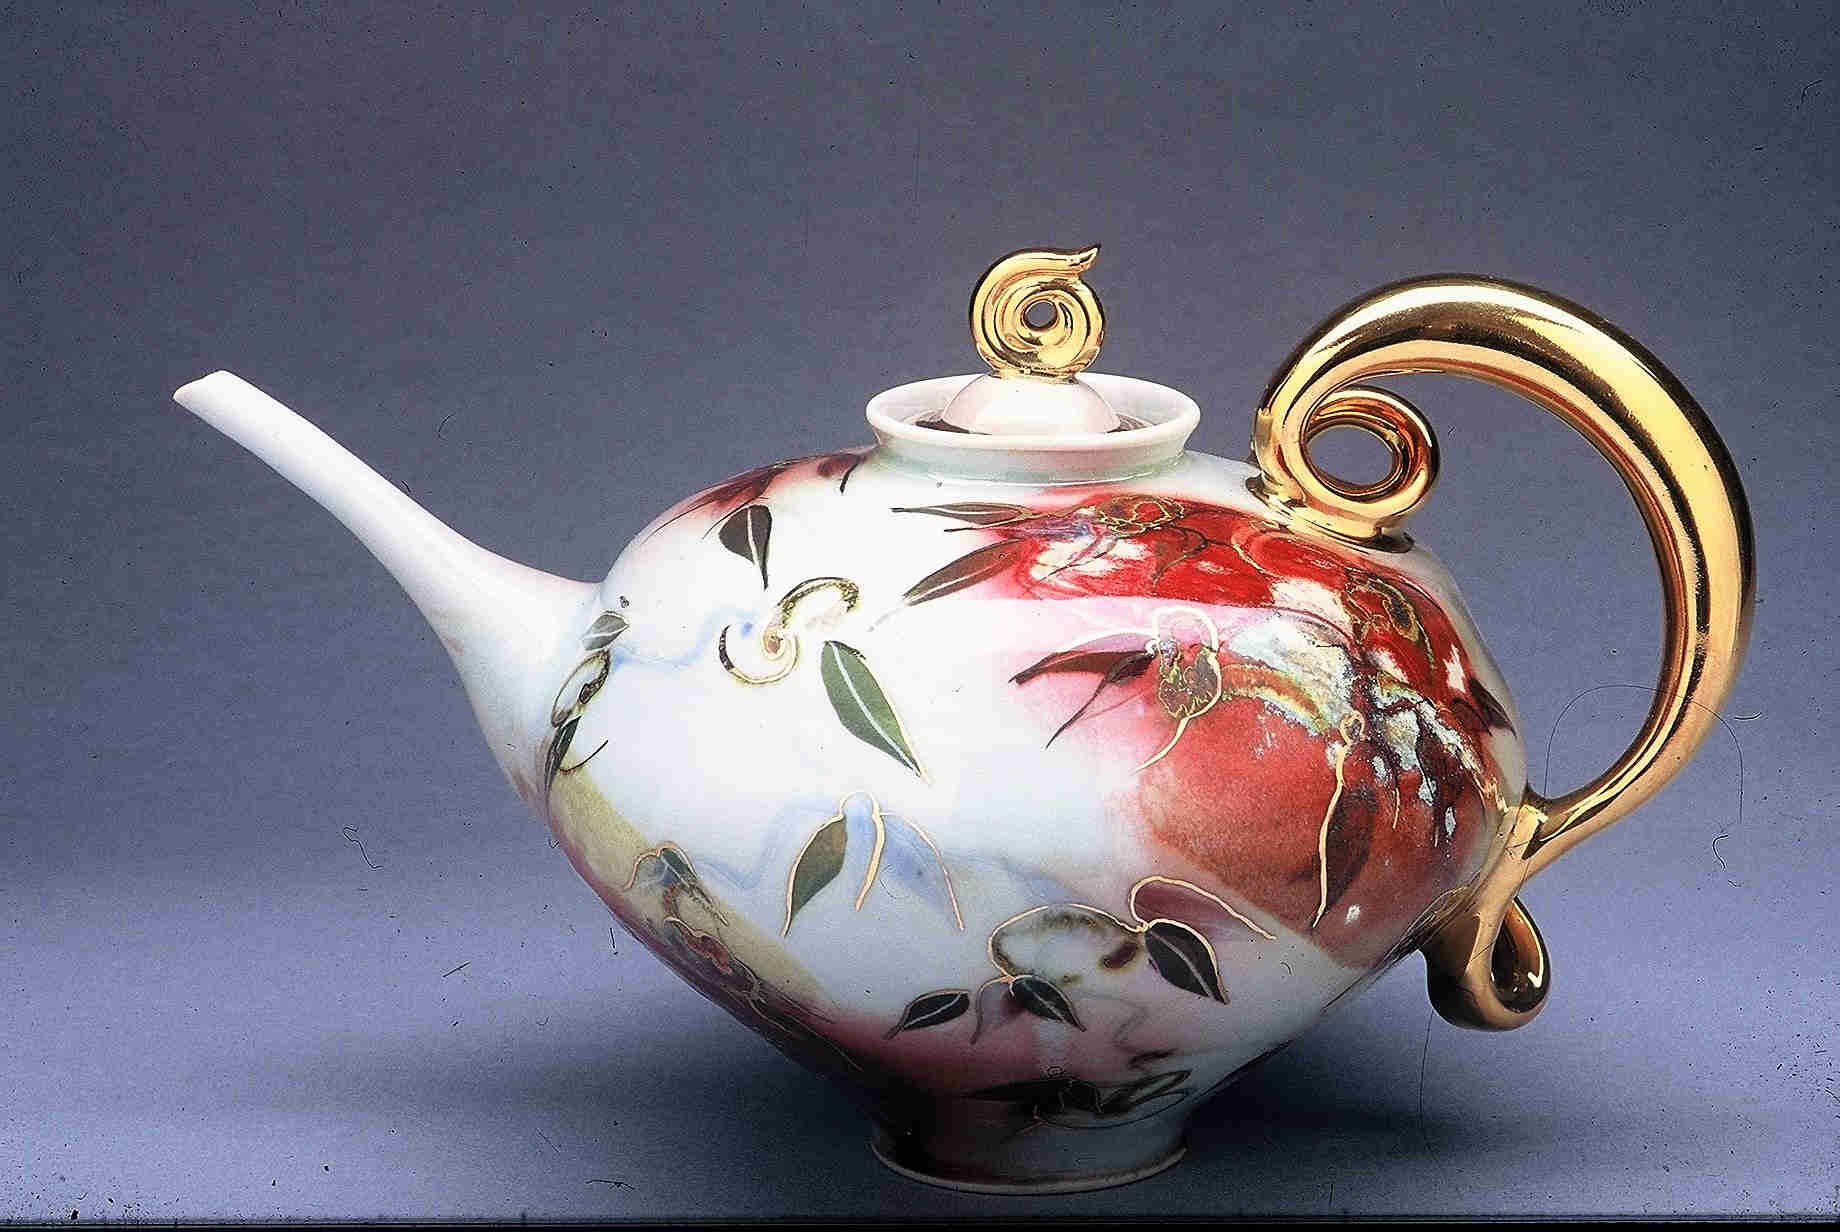 Valerie Metcalfe. 1995. Teapot. Porcelain and gold lustre. 22.9 cm. h.